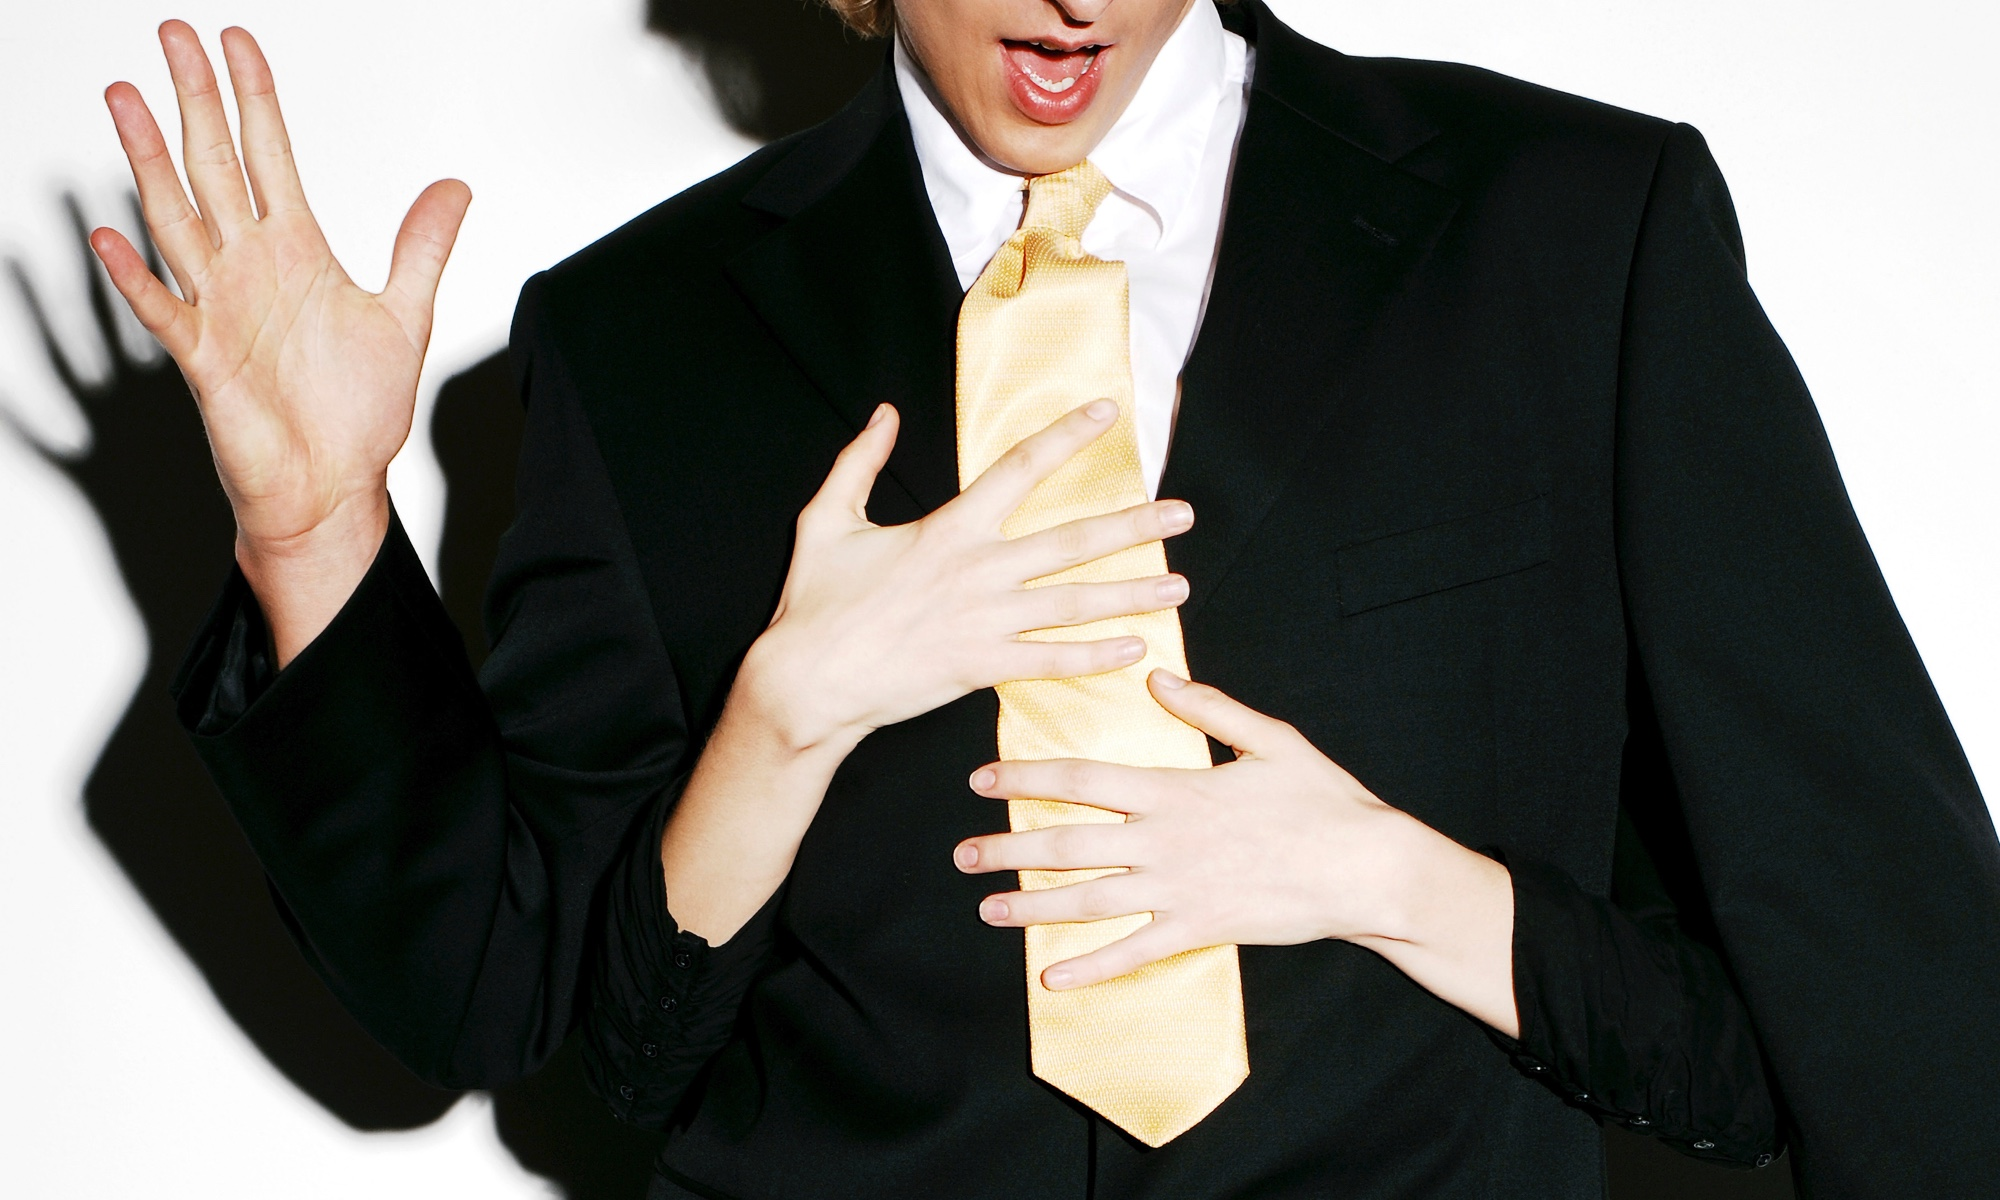 A man in a black suit, white shirt and yellow tie looking comically surprised at what look to be a woman's hands wrapped around him groping him from behind.